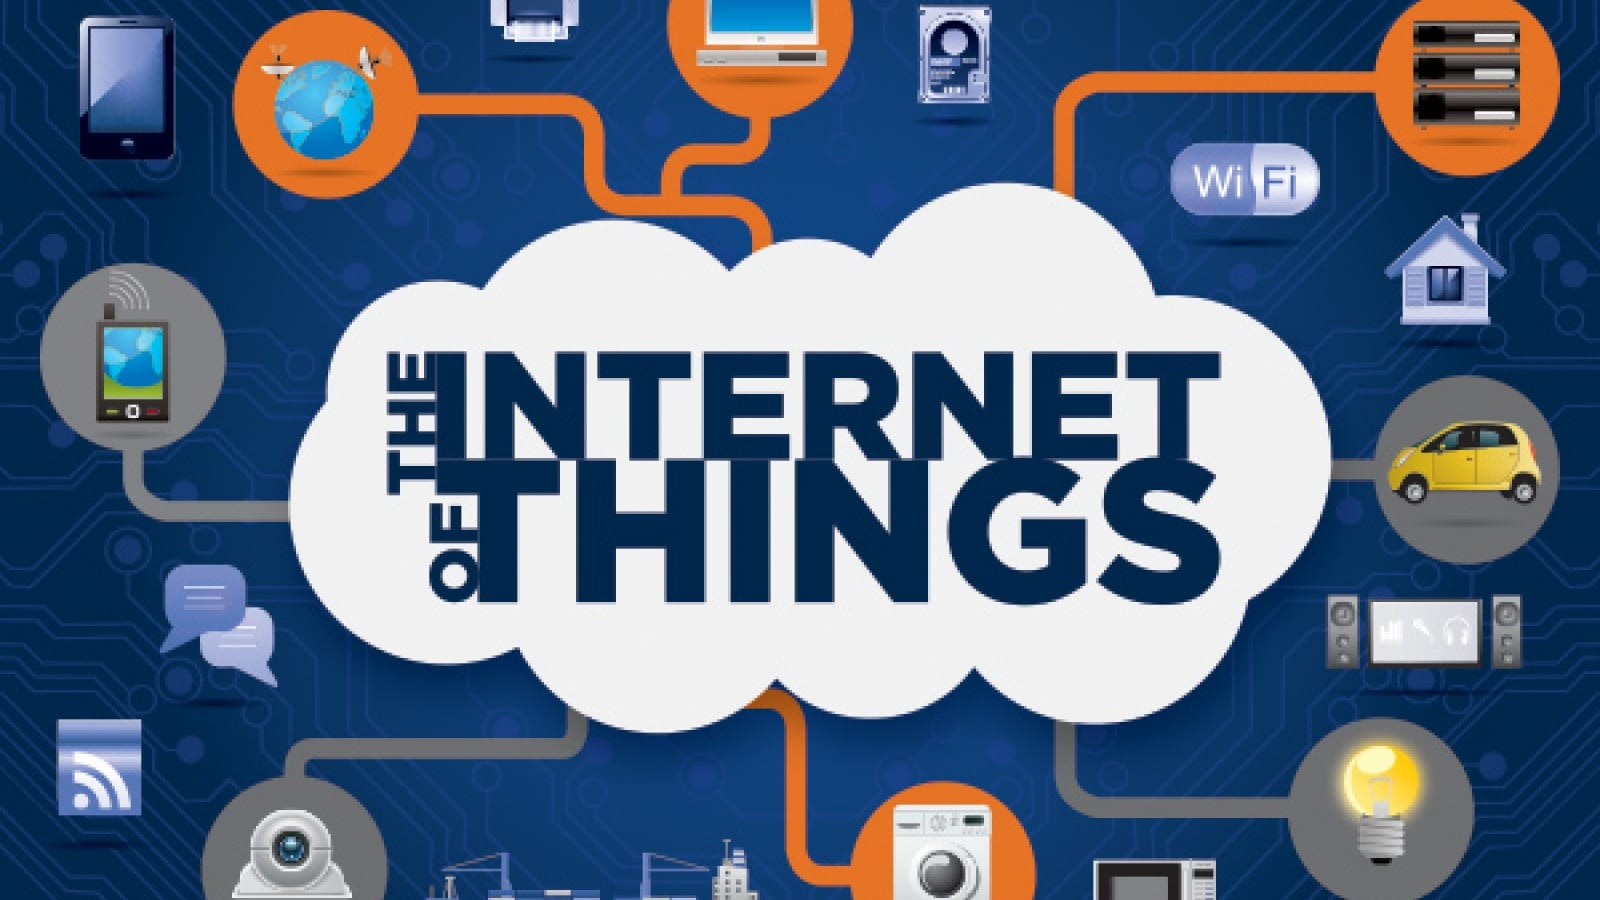 INTERNET OF THINGS POSES